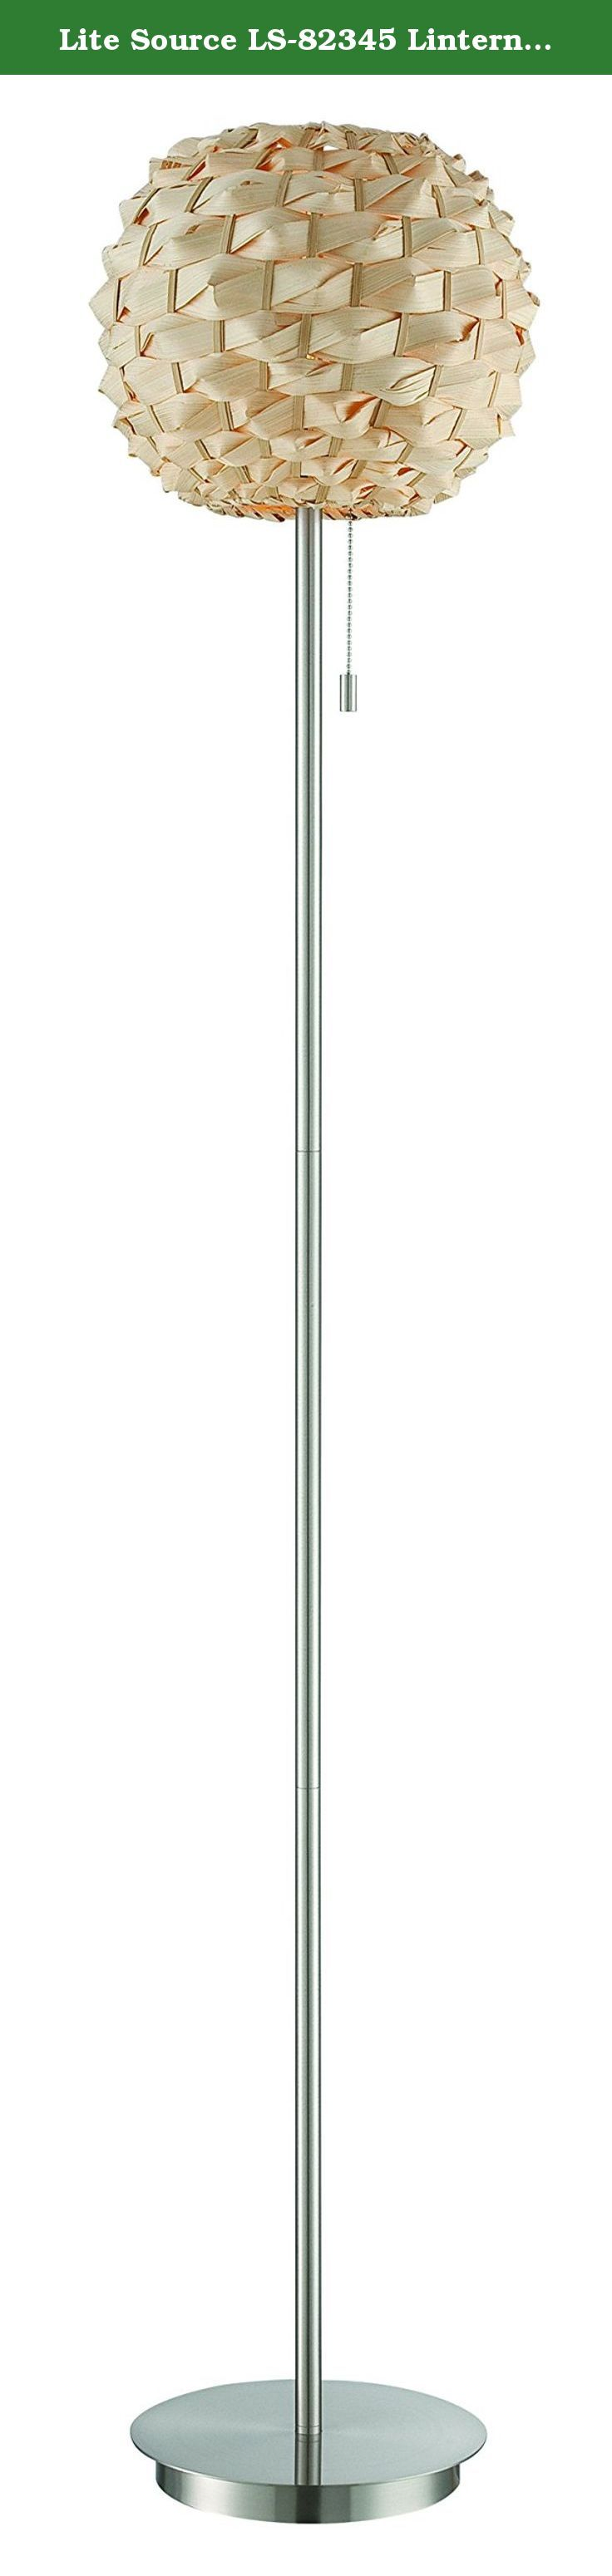 Lite Source LS-82345 Linterna Floor Lamp, Polished Steel. The LS-82345 Lantern Floor Lamp features polished steel with a rattan shade. Includes one compact fluorescent 23-watt bulb. Item Dimensions: 13-Inch long, 13-Inch wide, 64.5-Inch high. Shade is a socket ring shade. Shade Dimensions: Top is 5-Inch long, 5-Inch wide and 10-Inch high; Base is 5-Inch in diameter. Lamp features an E27 socket and an on/off pull-chain switch. Assembly required. Covered by a 1-Year manufacturer's warranty....